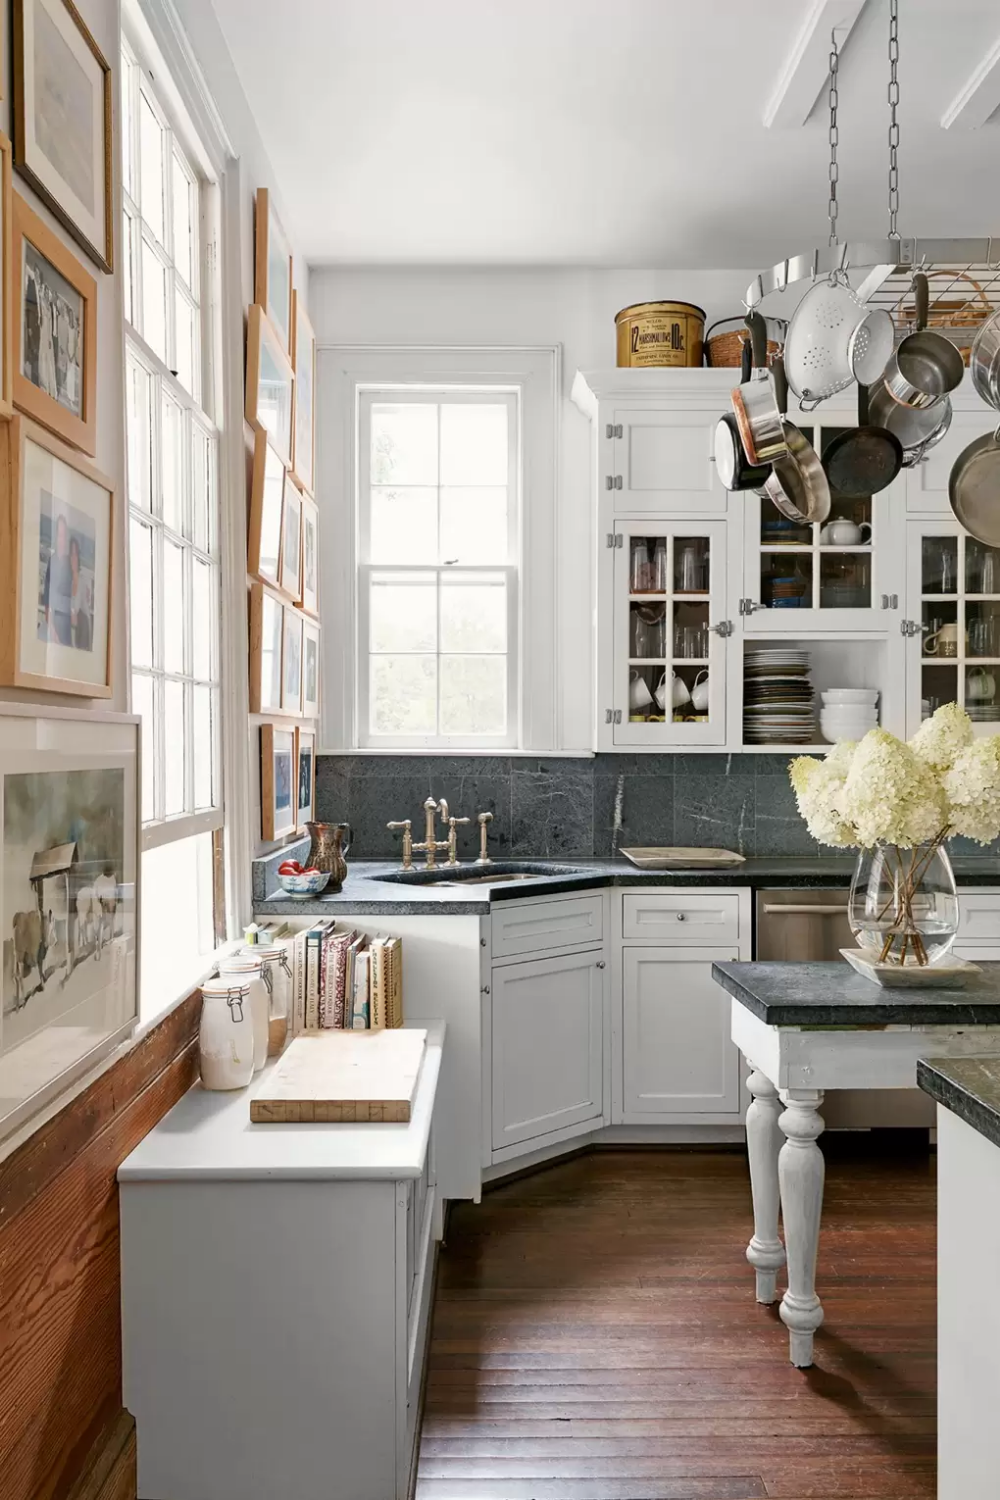 Country kitchen ideas and designs   Country kitchen, Kitchen ...